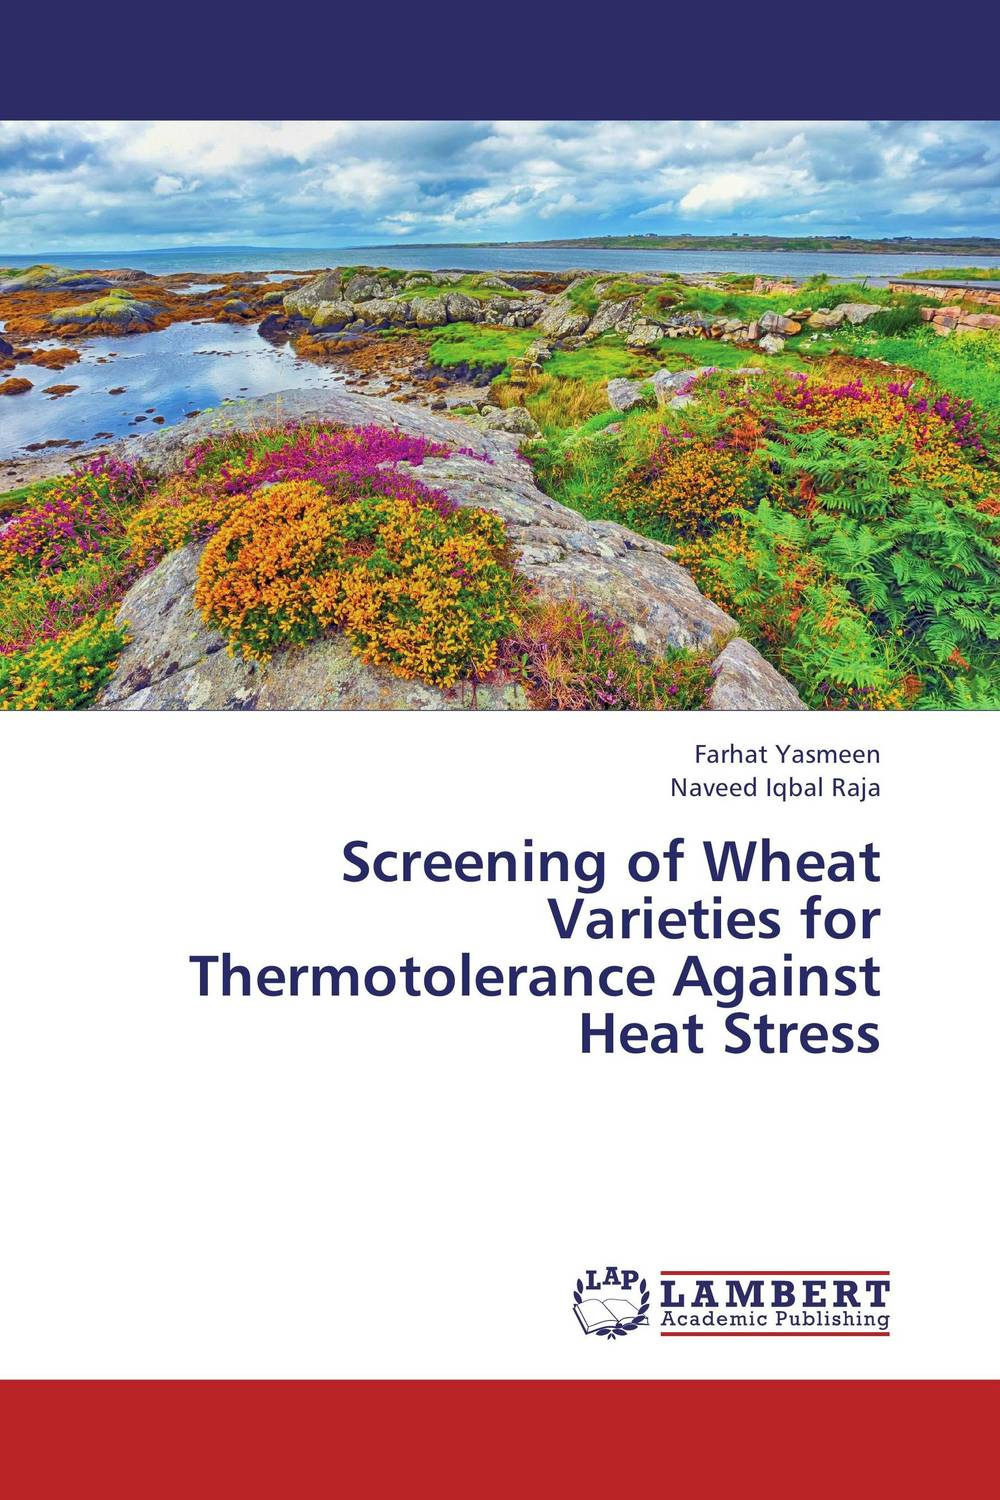 Screening of Wheat Varieties for Thermotolerance Against Heat Stress